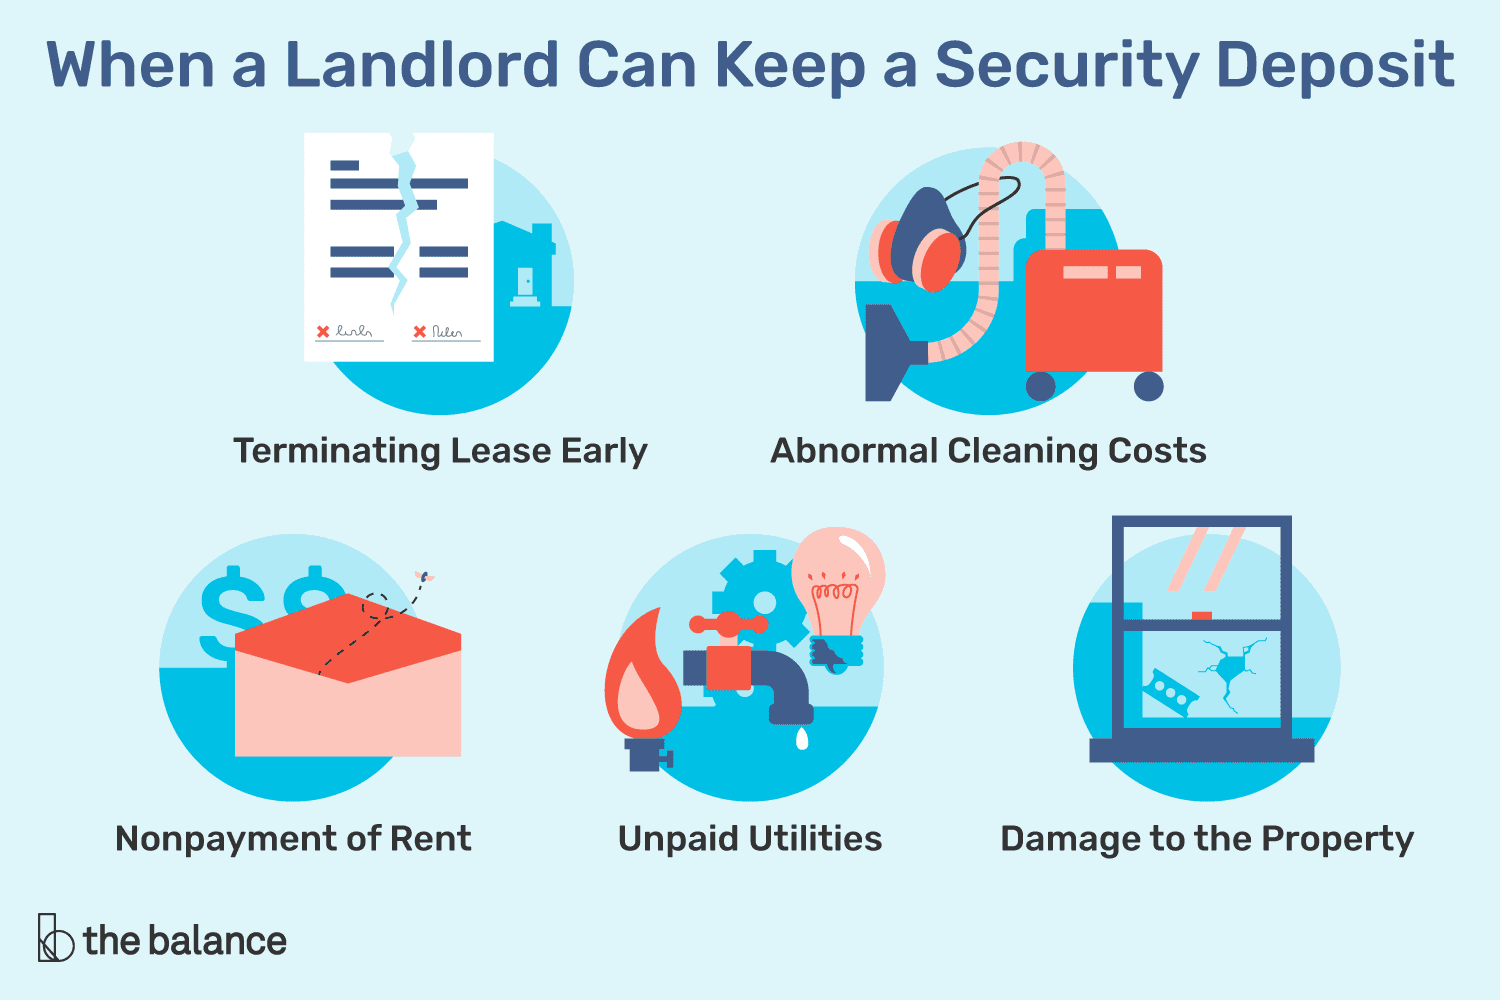 5 Reasons Not to Return a Tenant's Security Deposit